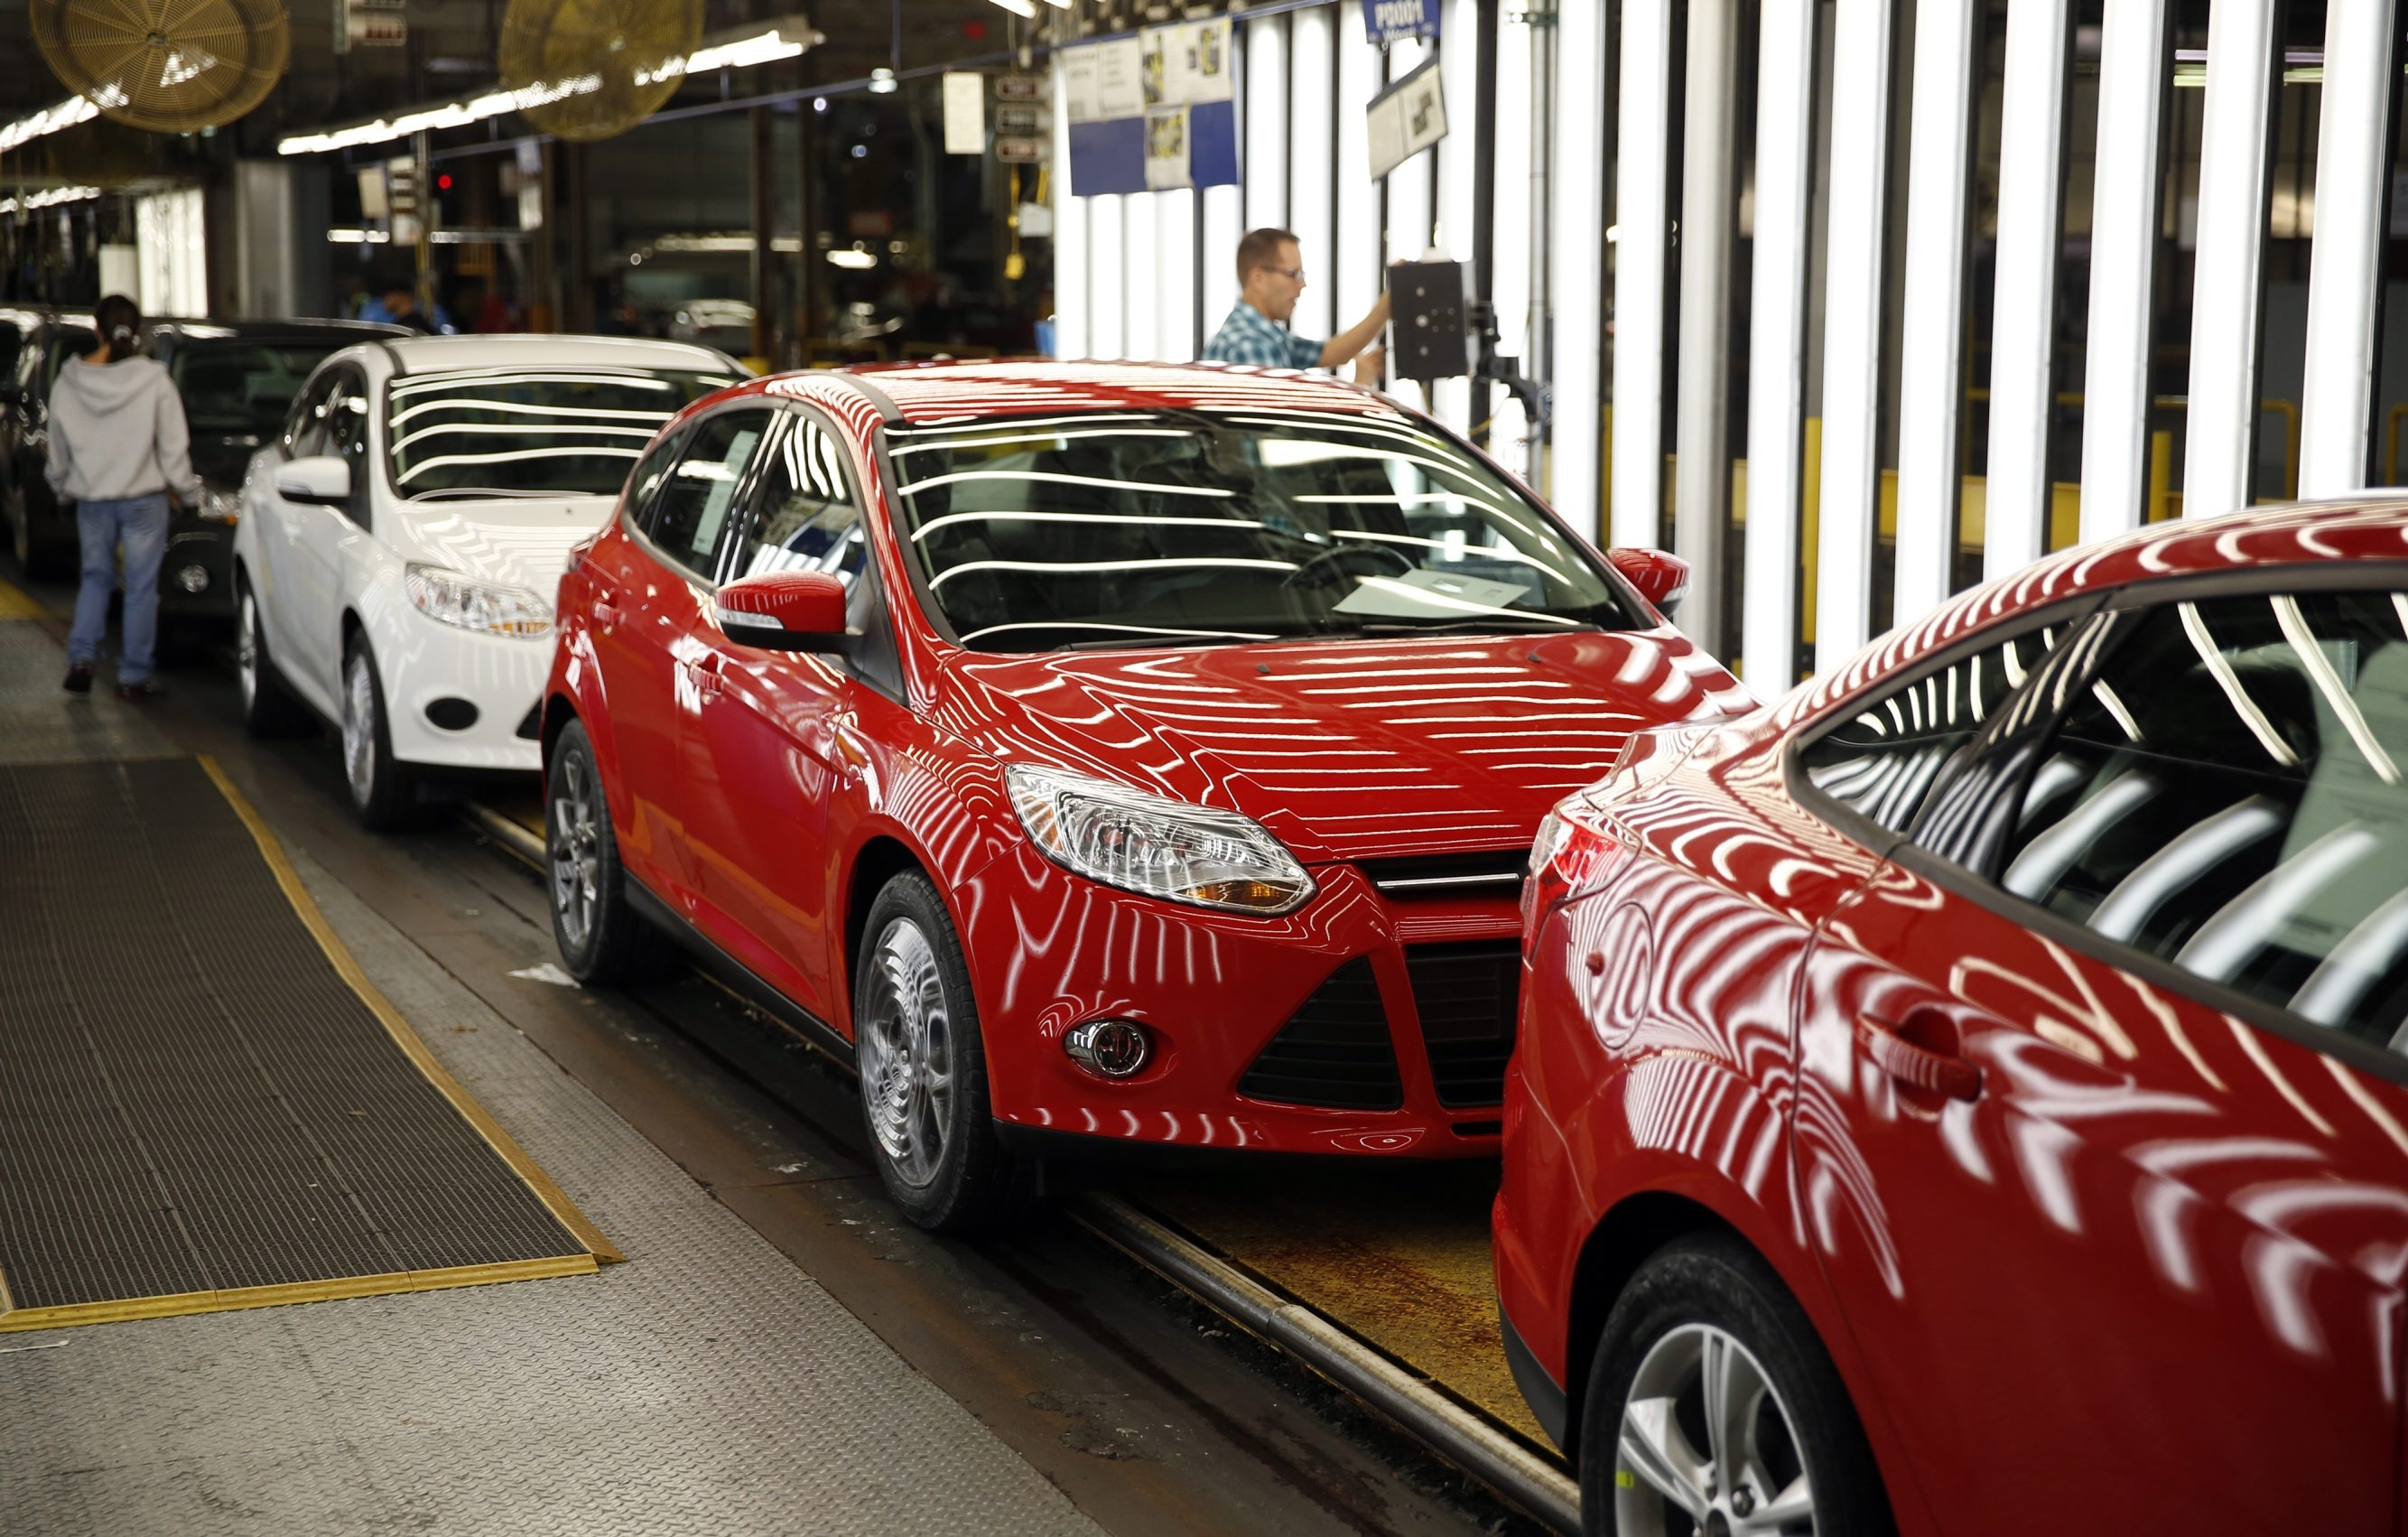 Ford Motor Co. Focus vehicles move through the inspection area at the company's Michigan Assembly Plant in Wayne, Michigan, U.S., on Monday, Oct. 7, 2013. Ford is celebrating the 100th anniversary of the moving assembly line at the plant. Photographer: Jeff Kowalsky/Bloomberg